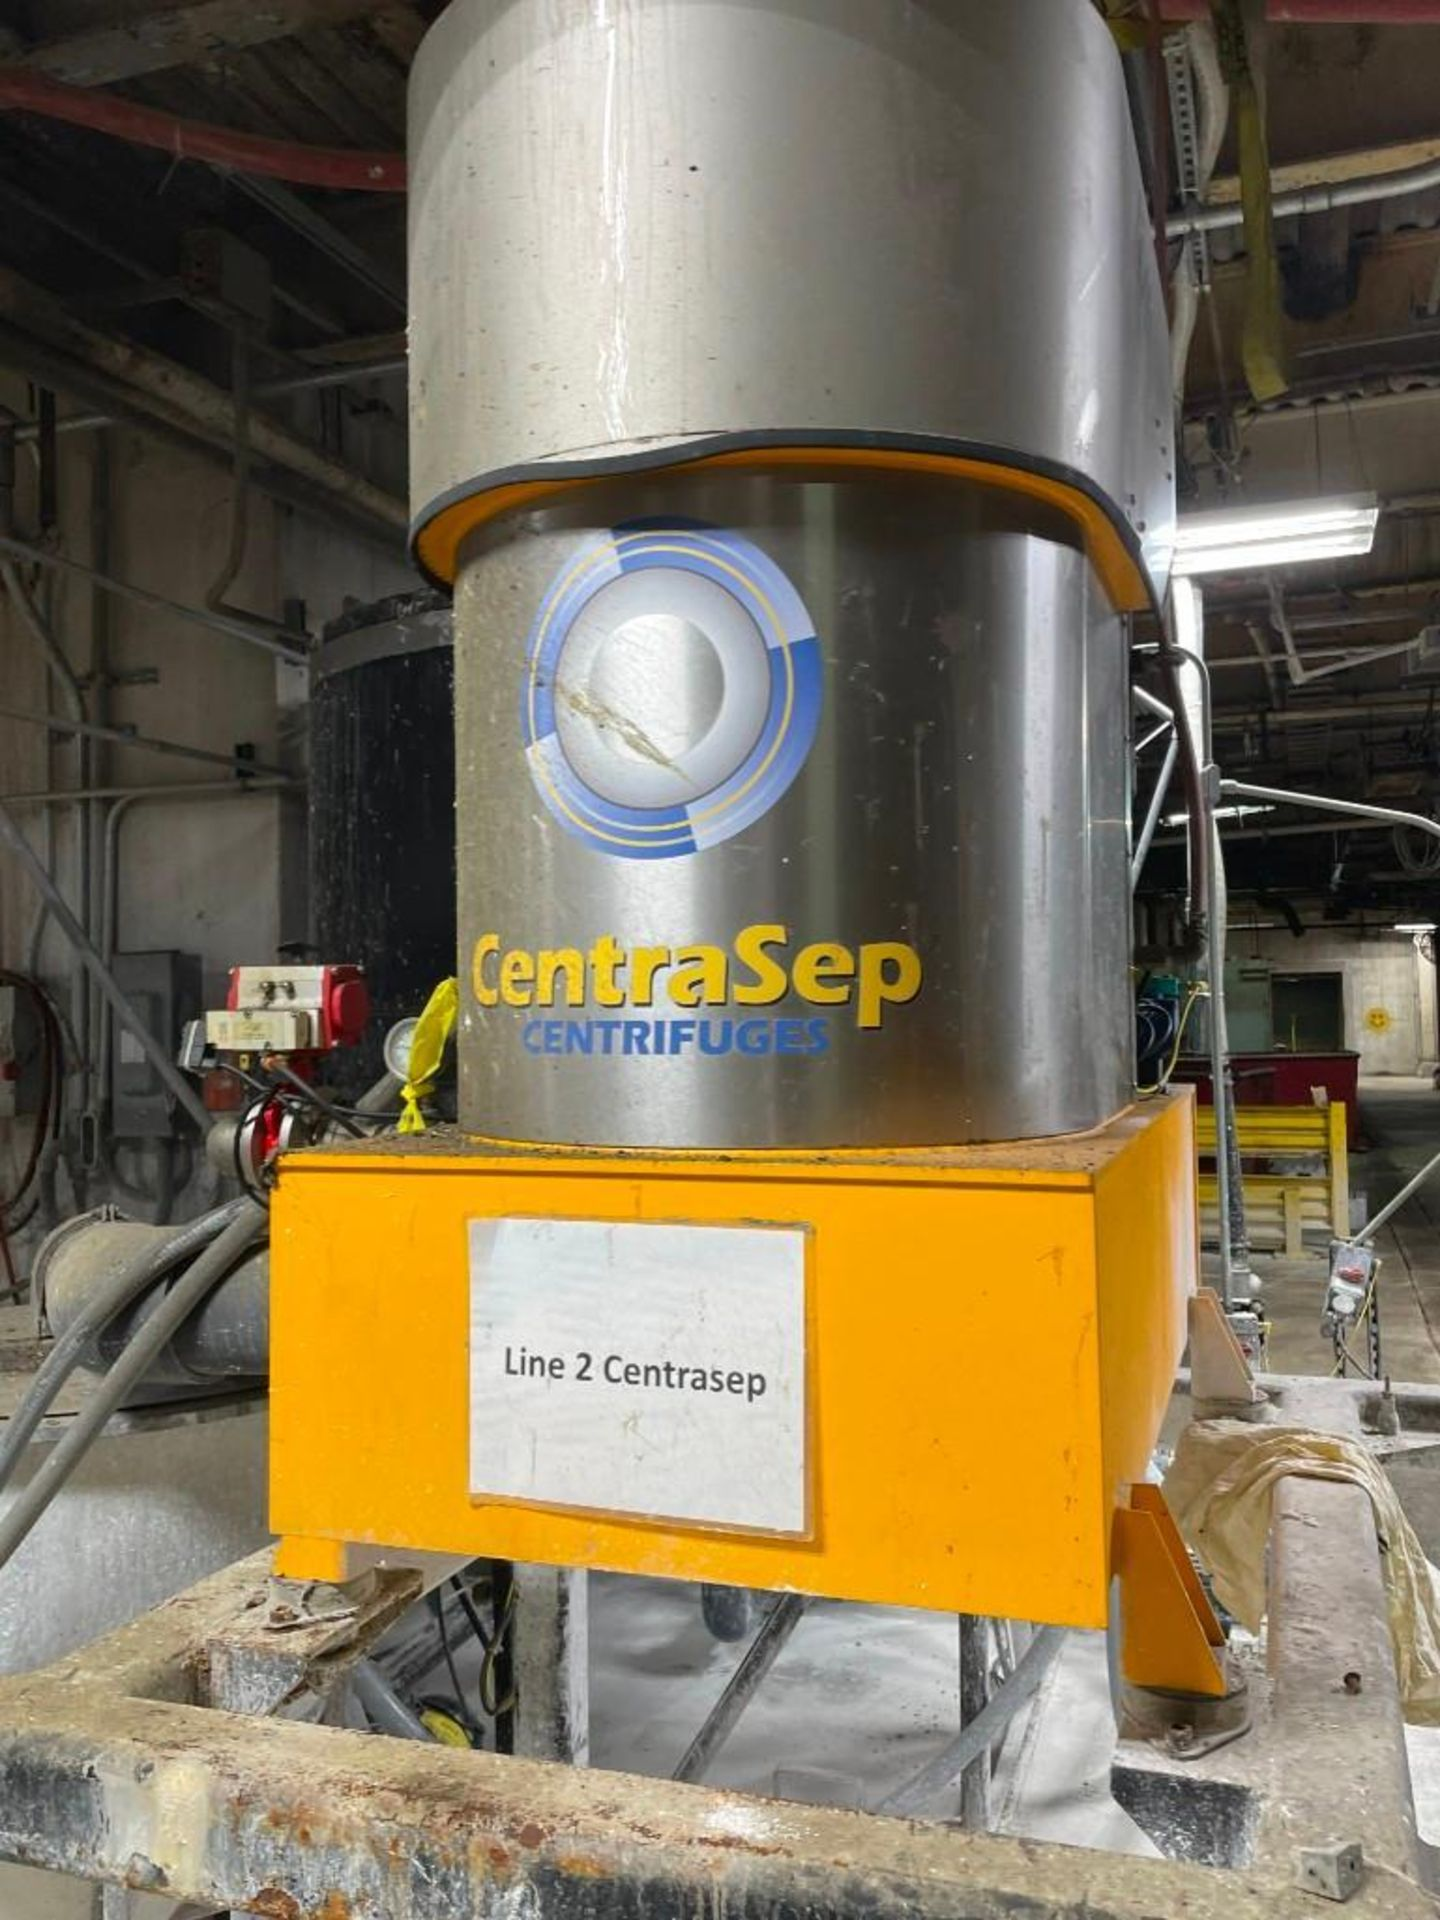 CentraSep Centrifugal Separation 3 Tank Filtration System - Image 6 of 9